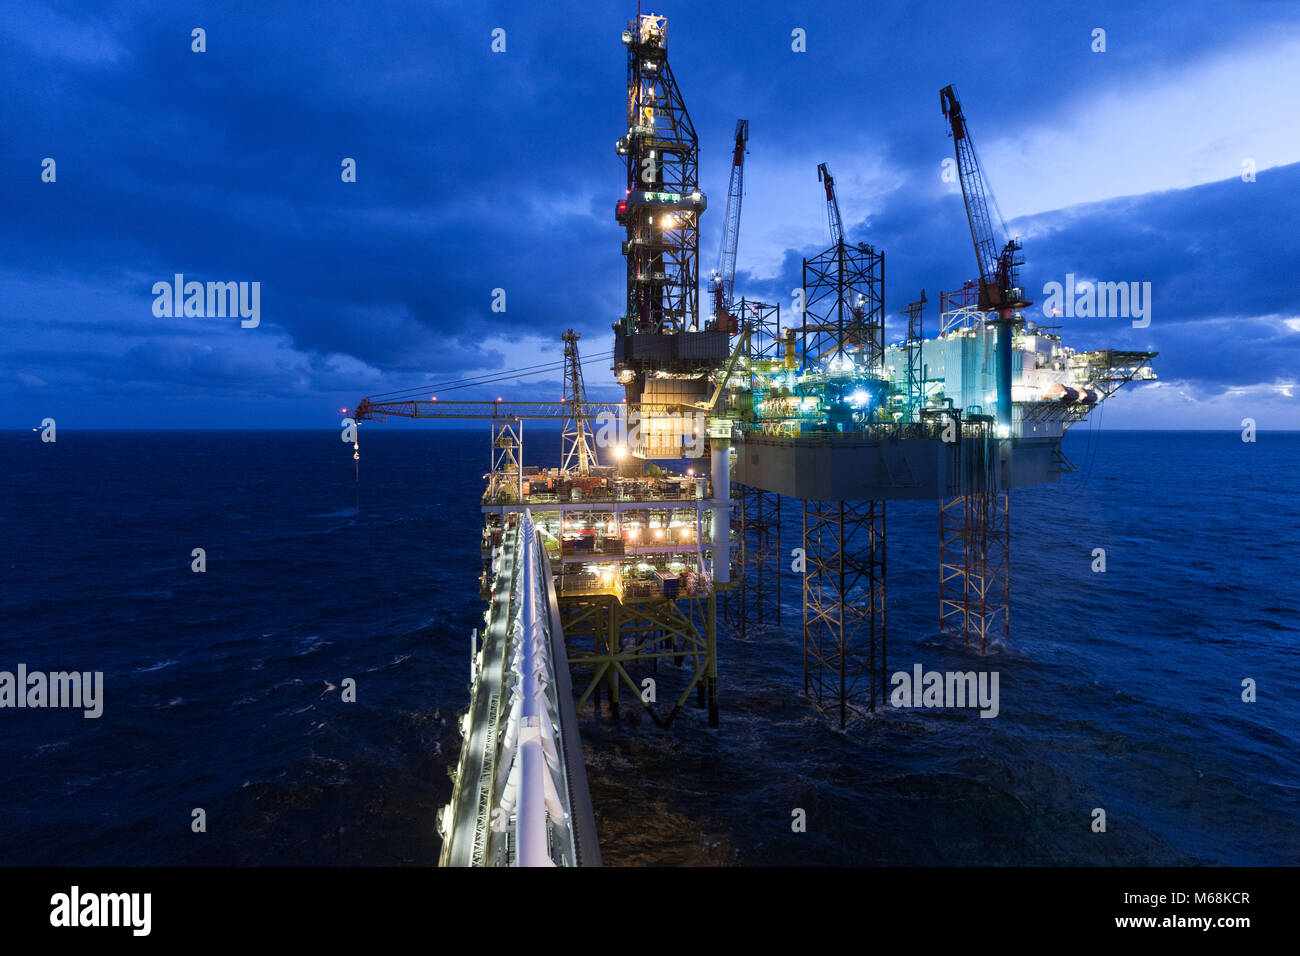 North Sea Oil Rig Worker In Winter Conditions Stock Photo